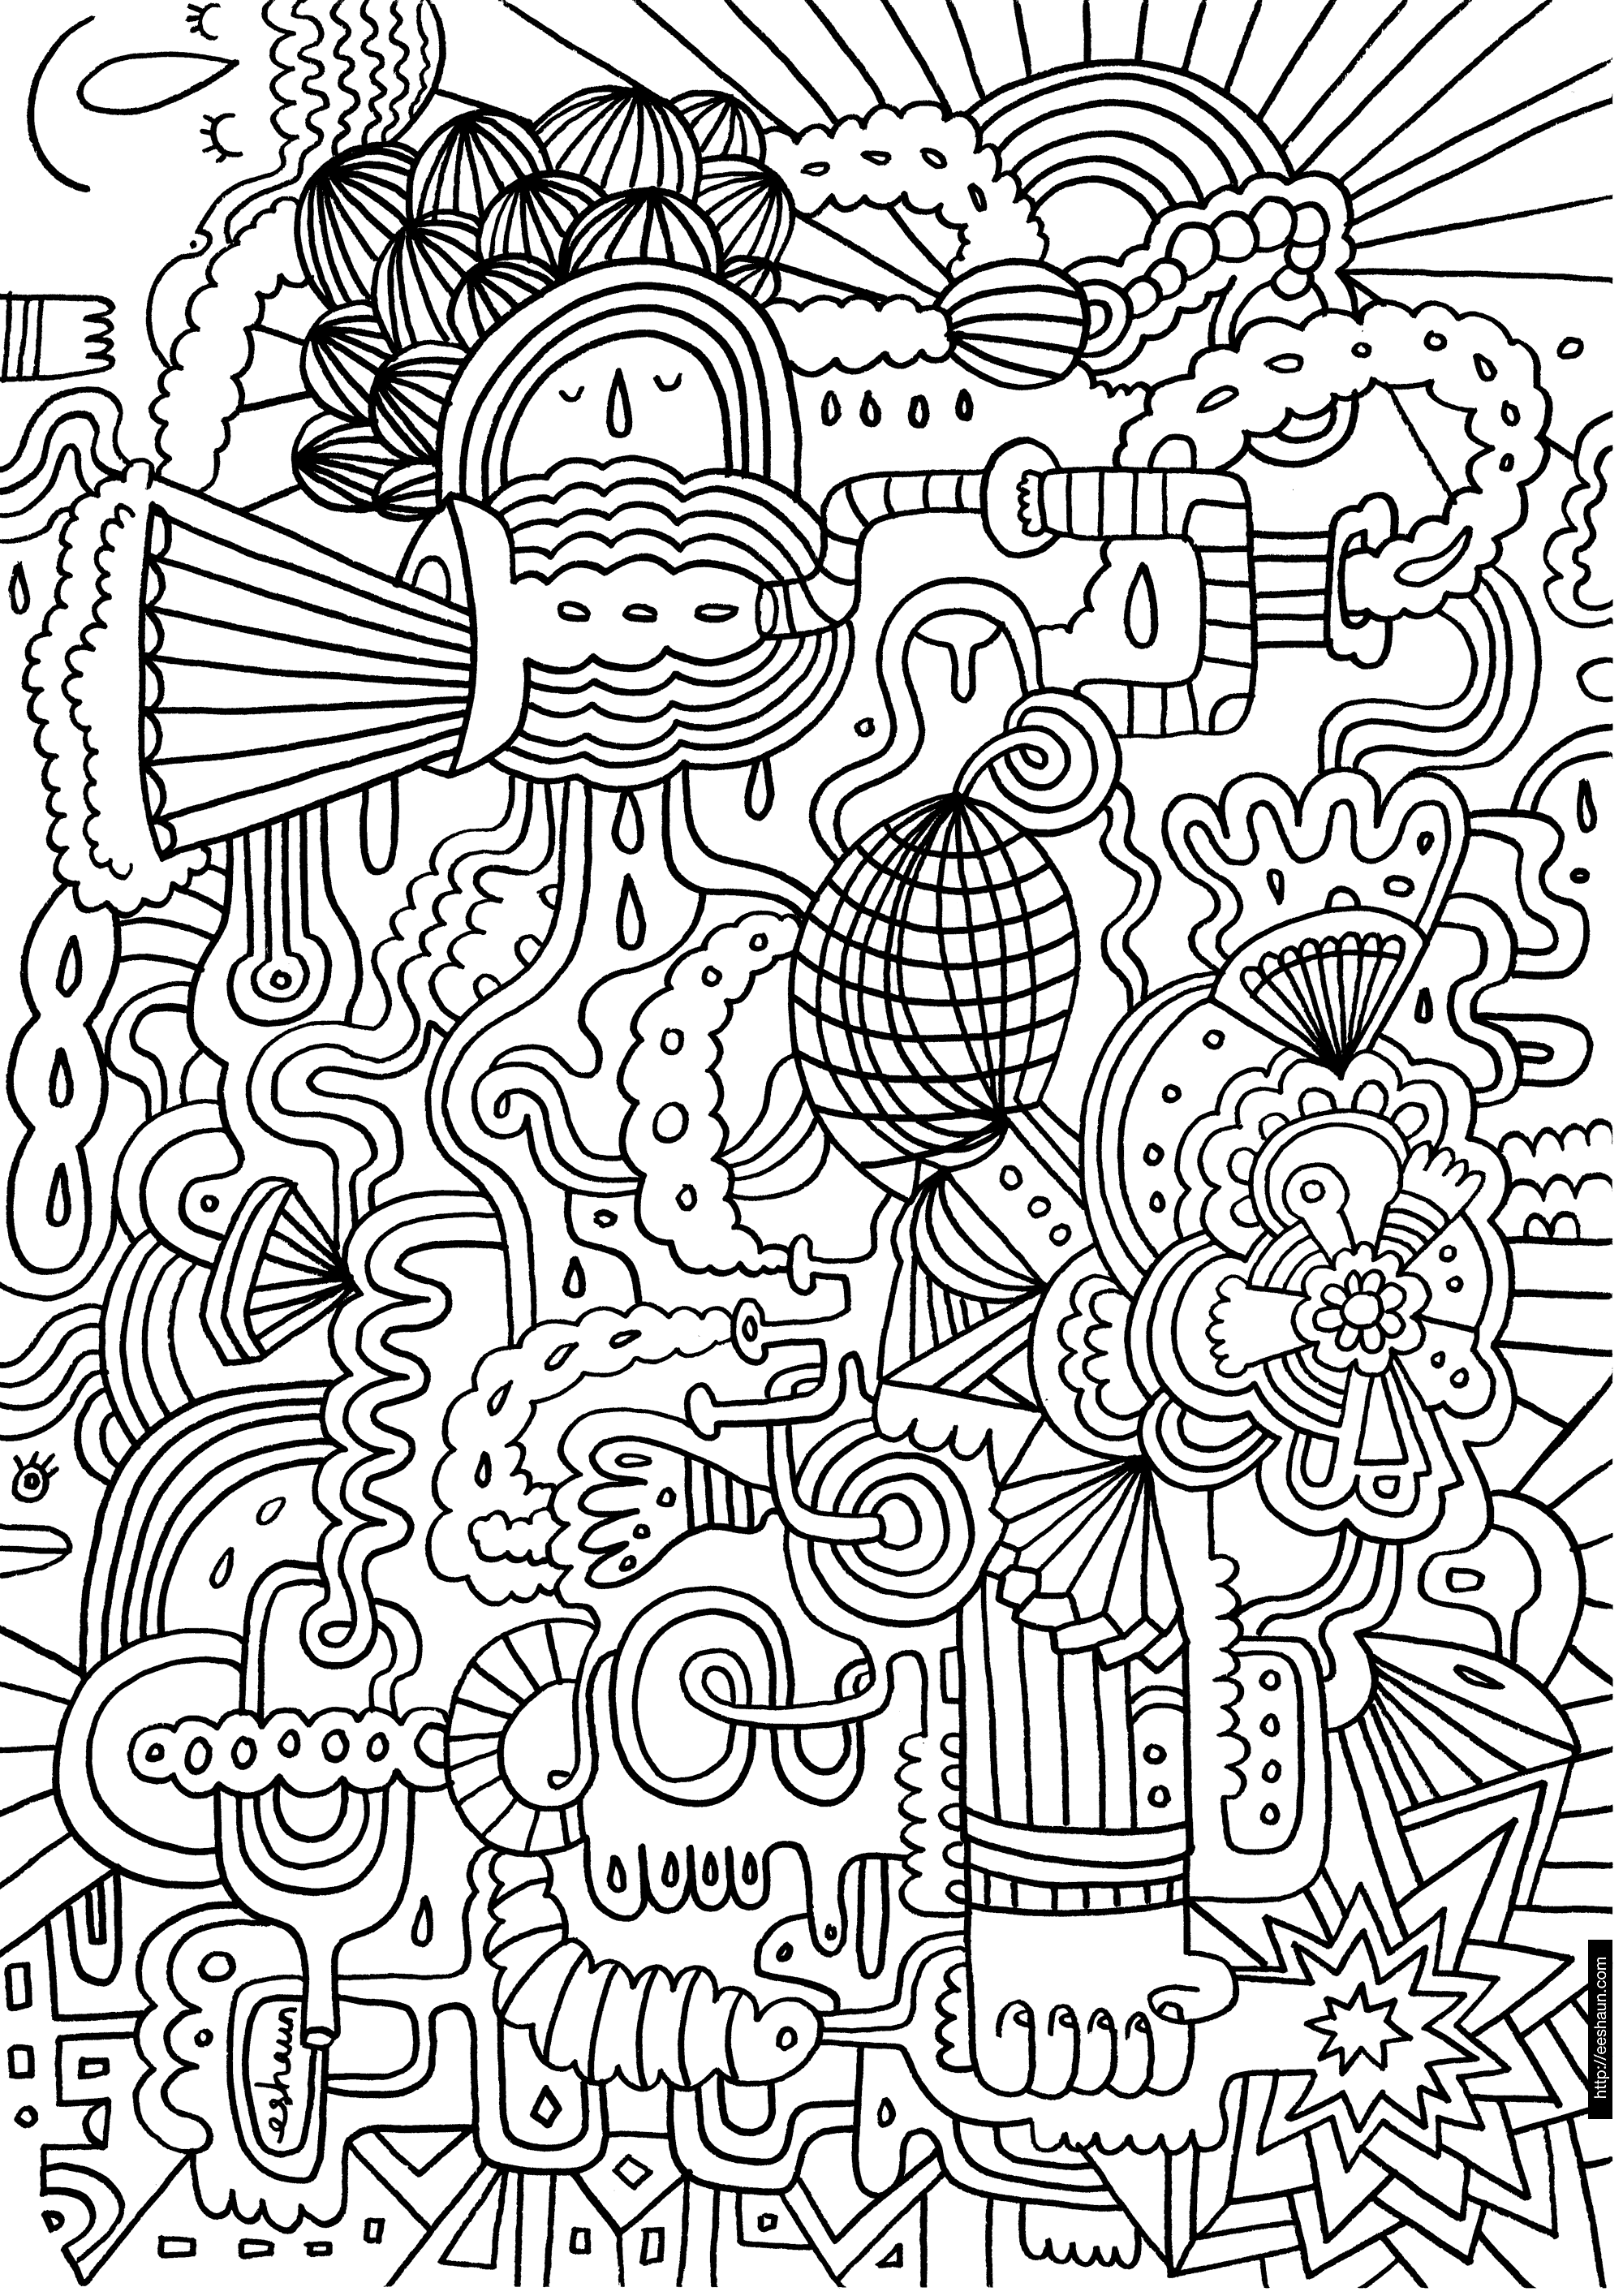 coloring pages patterns.html